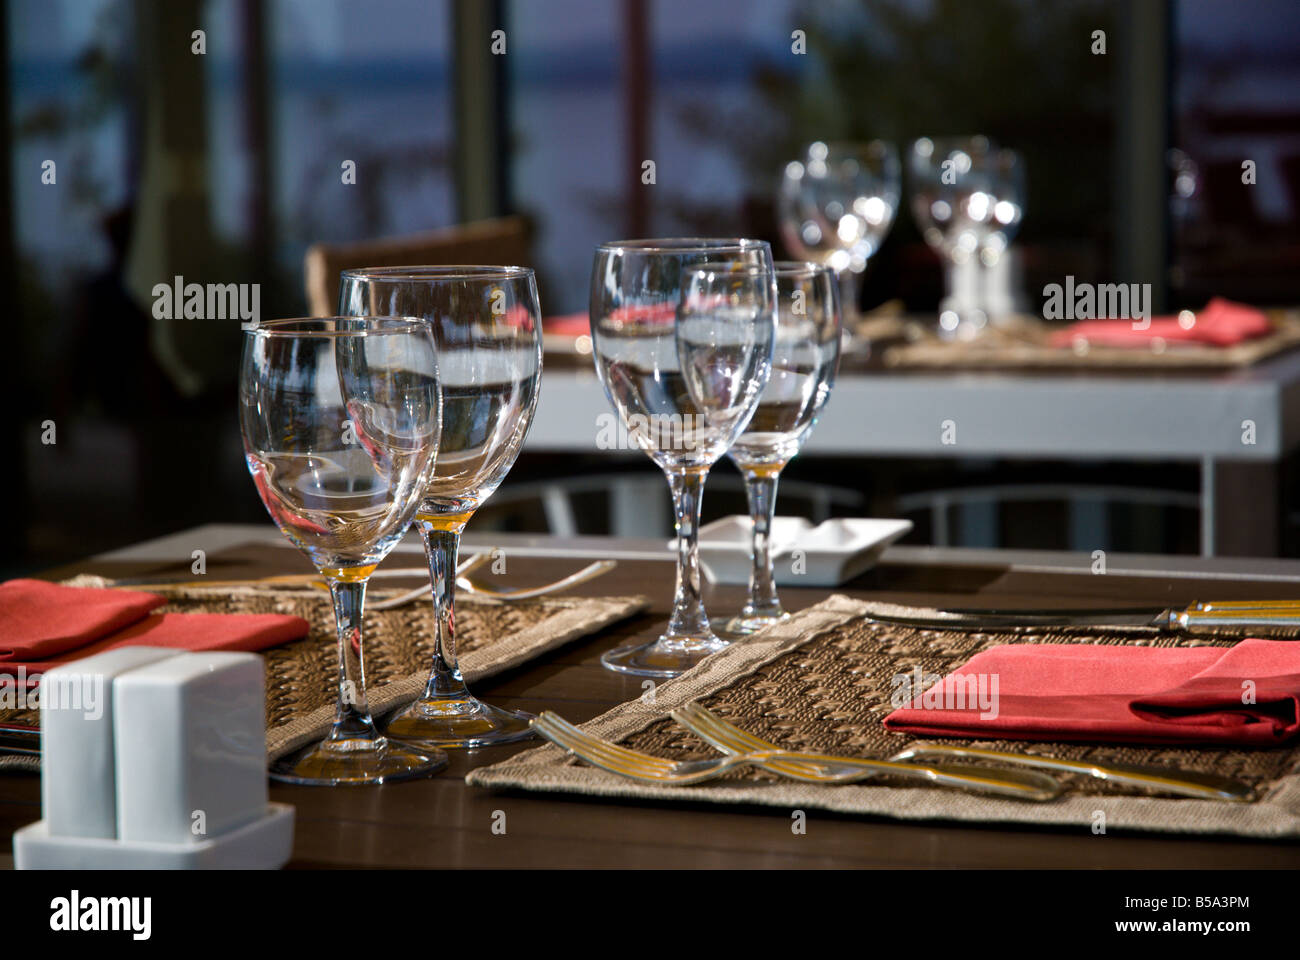 Table setting, wine glasses, water glasses on outdoor ...